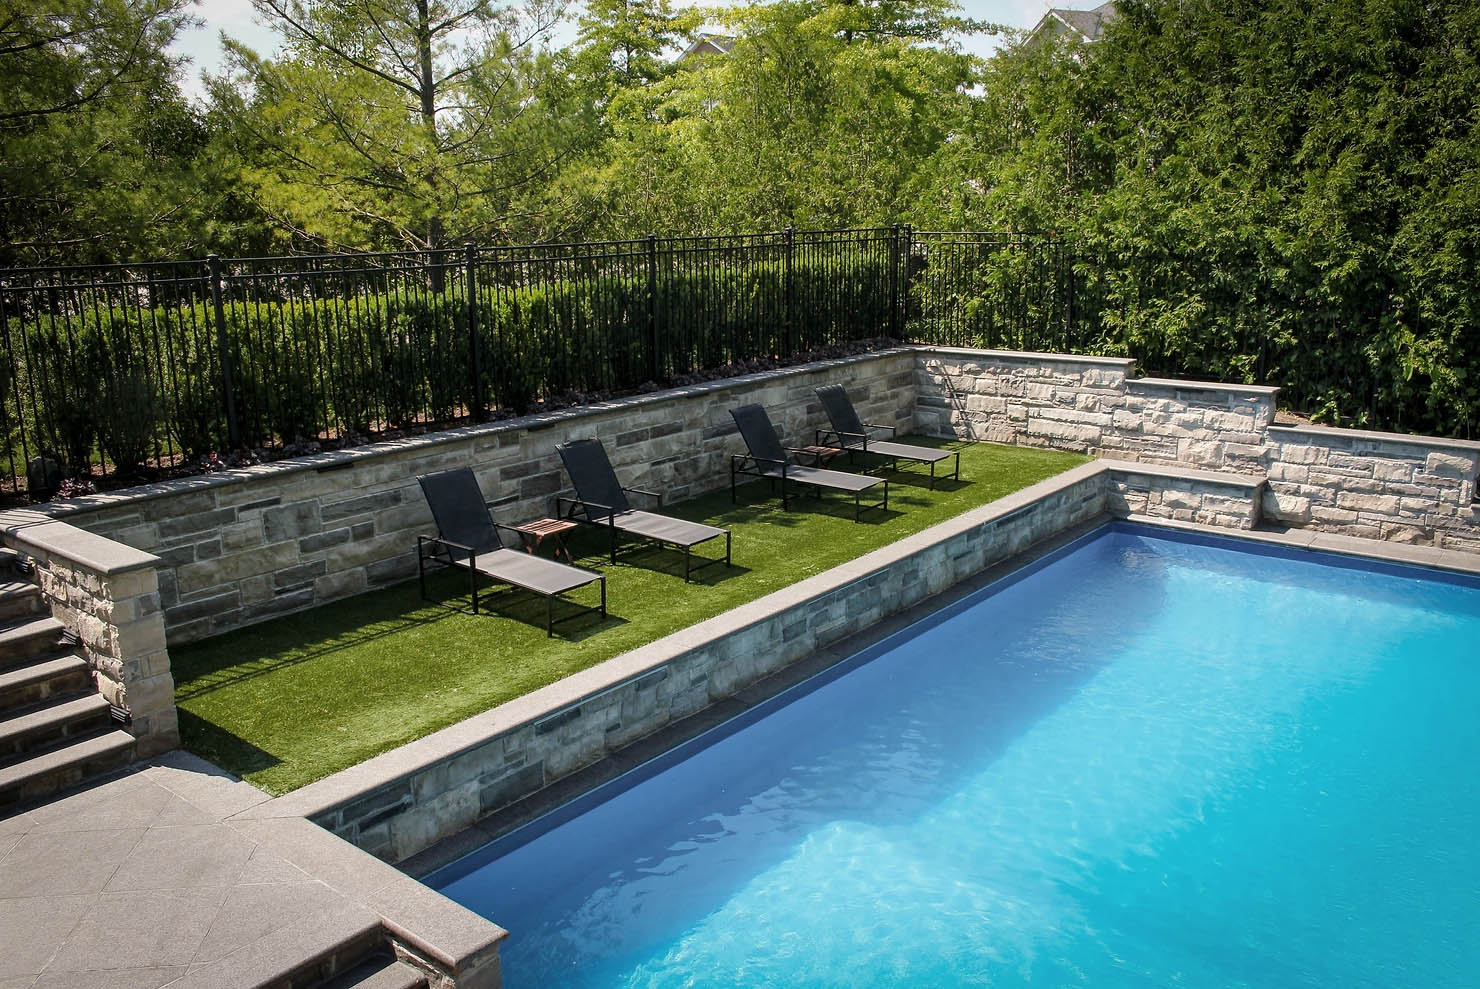 3 Reasons You Need an Iron Fence Around Your Pool